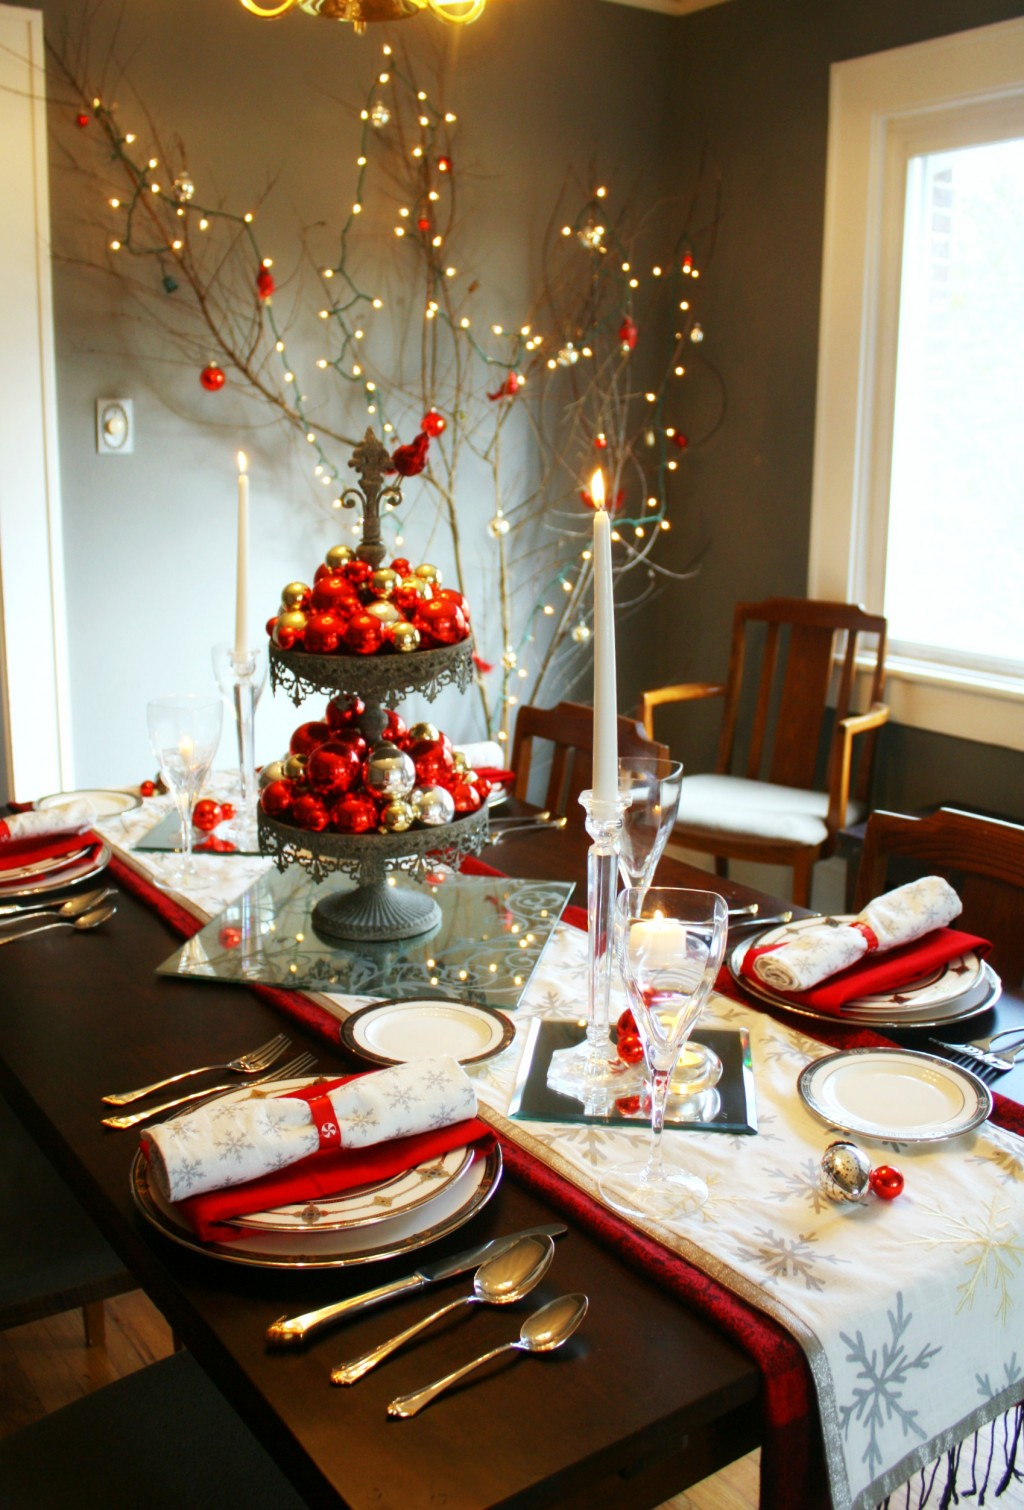 uncategorized-clean-holiday-dinner-table-decoration-ideas-christmas-dinner-table-decoration-ideas-christmas-dining-room-table-decoration-ideas-christmas-dinner-table-decoration-ideas-pinterest-pi-